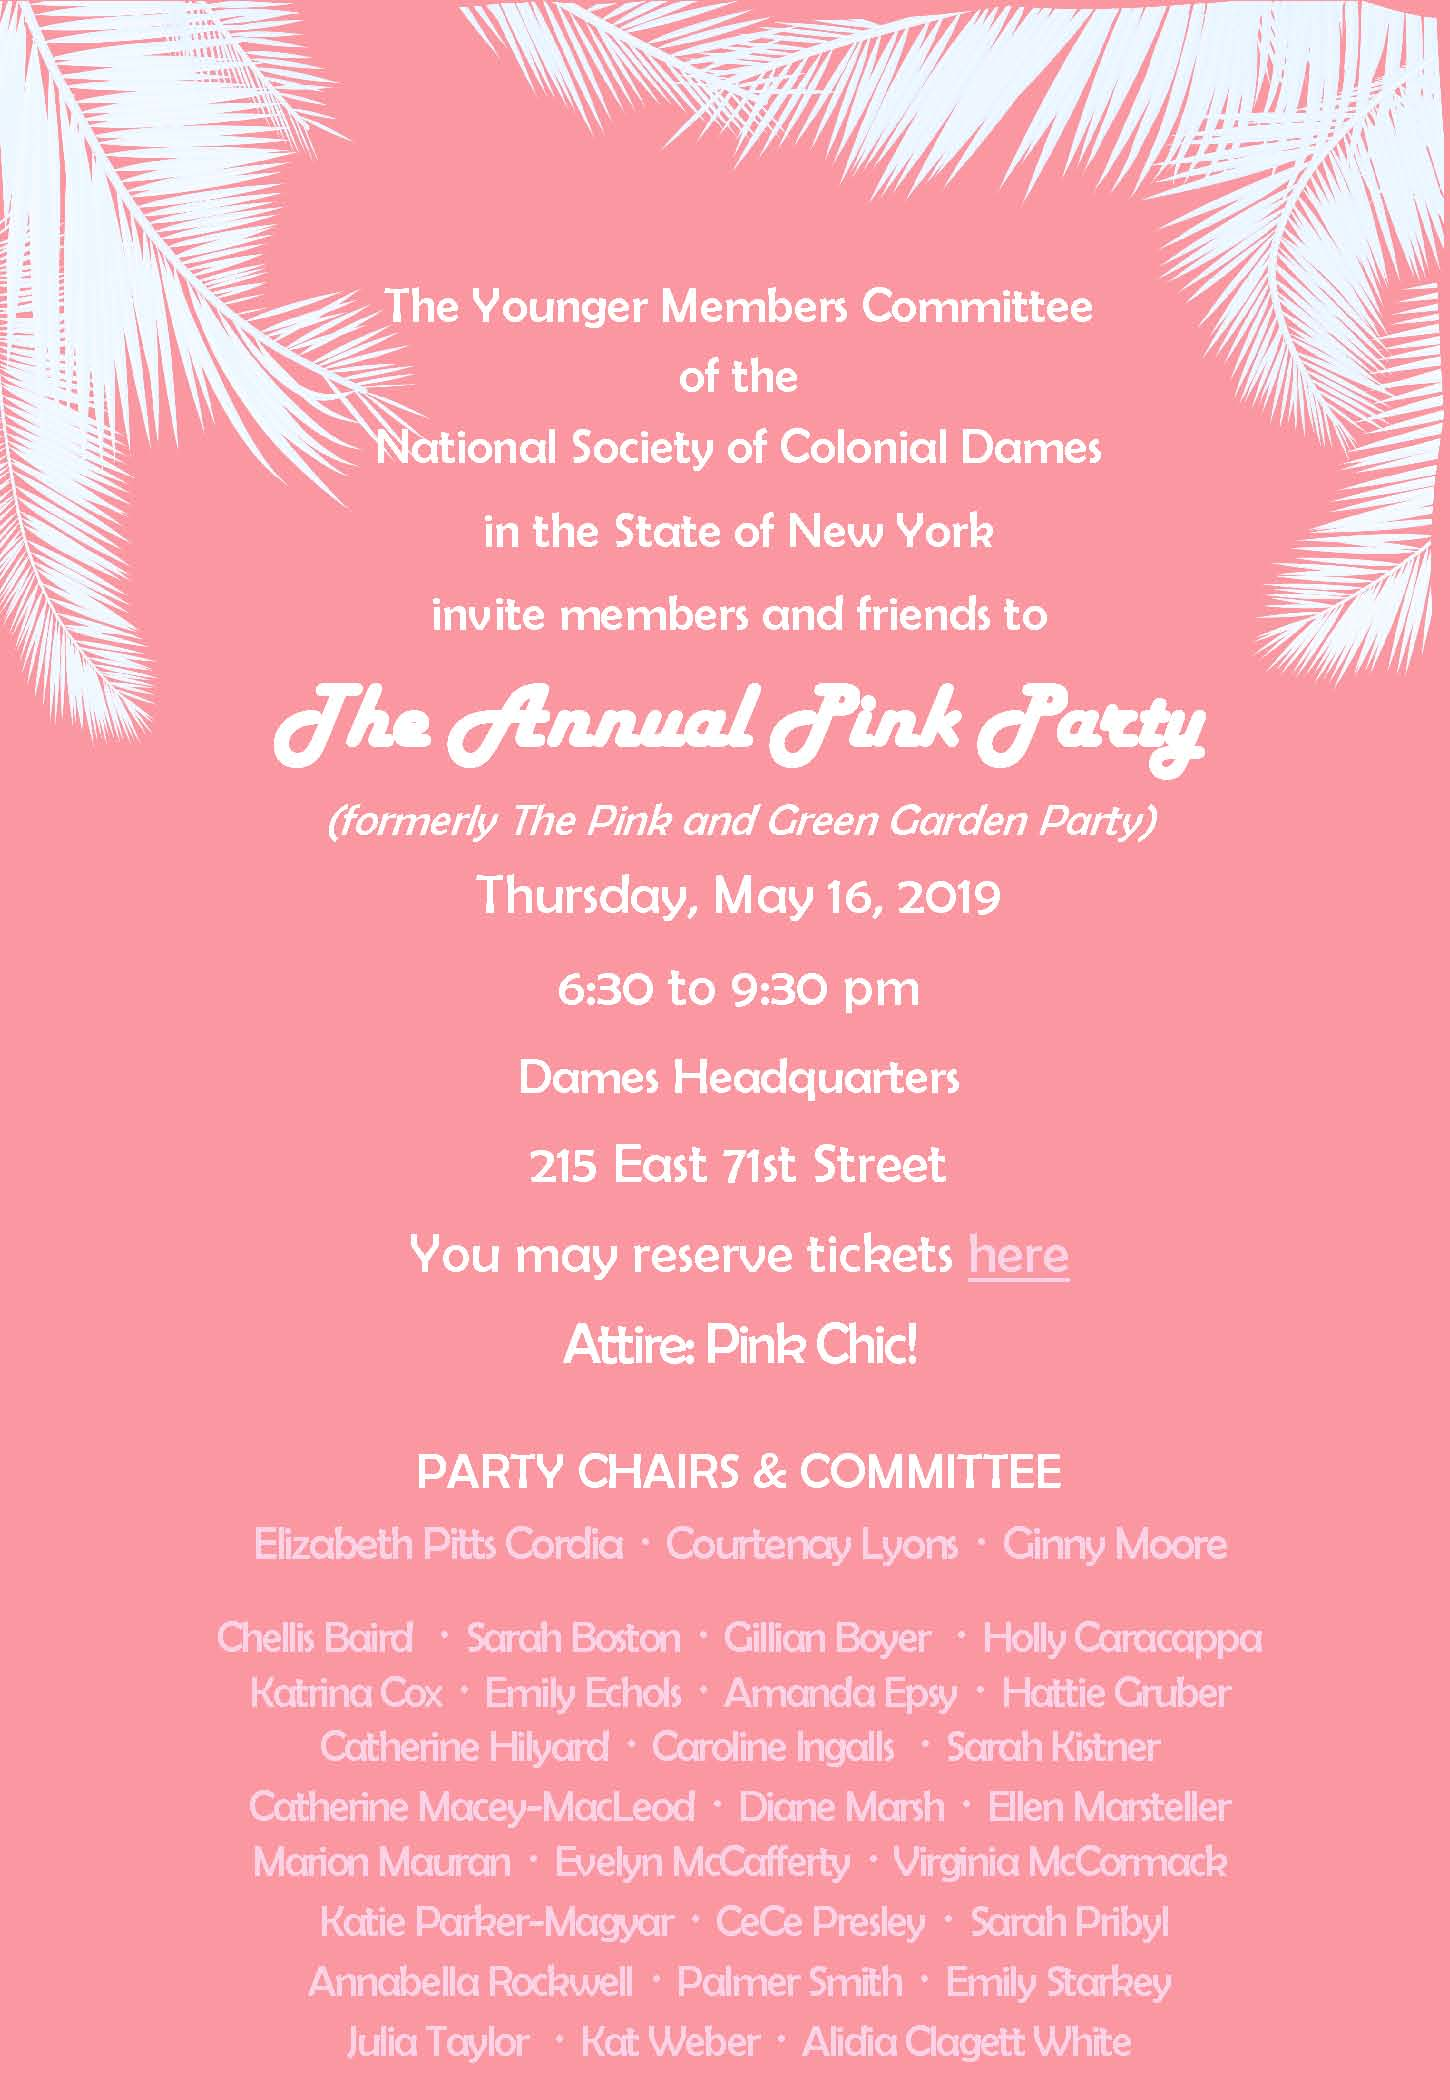 May 16th Colonial Dames Pink Party Invitation.jpg